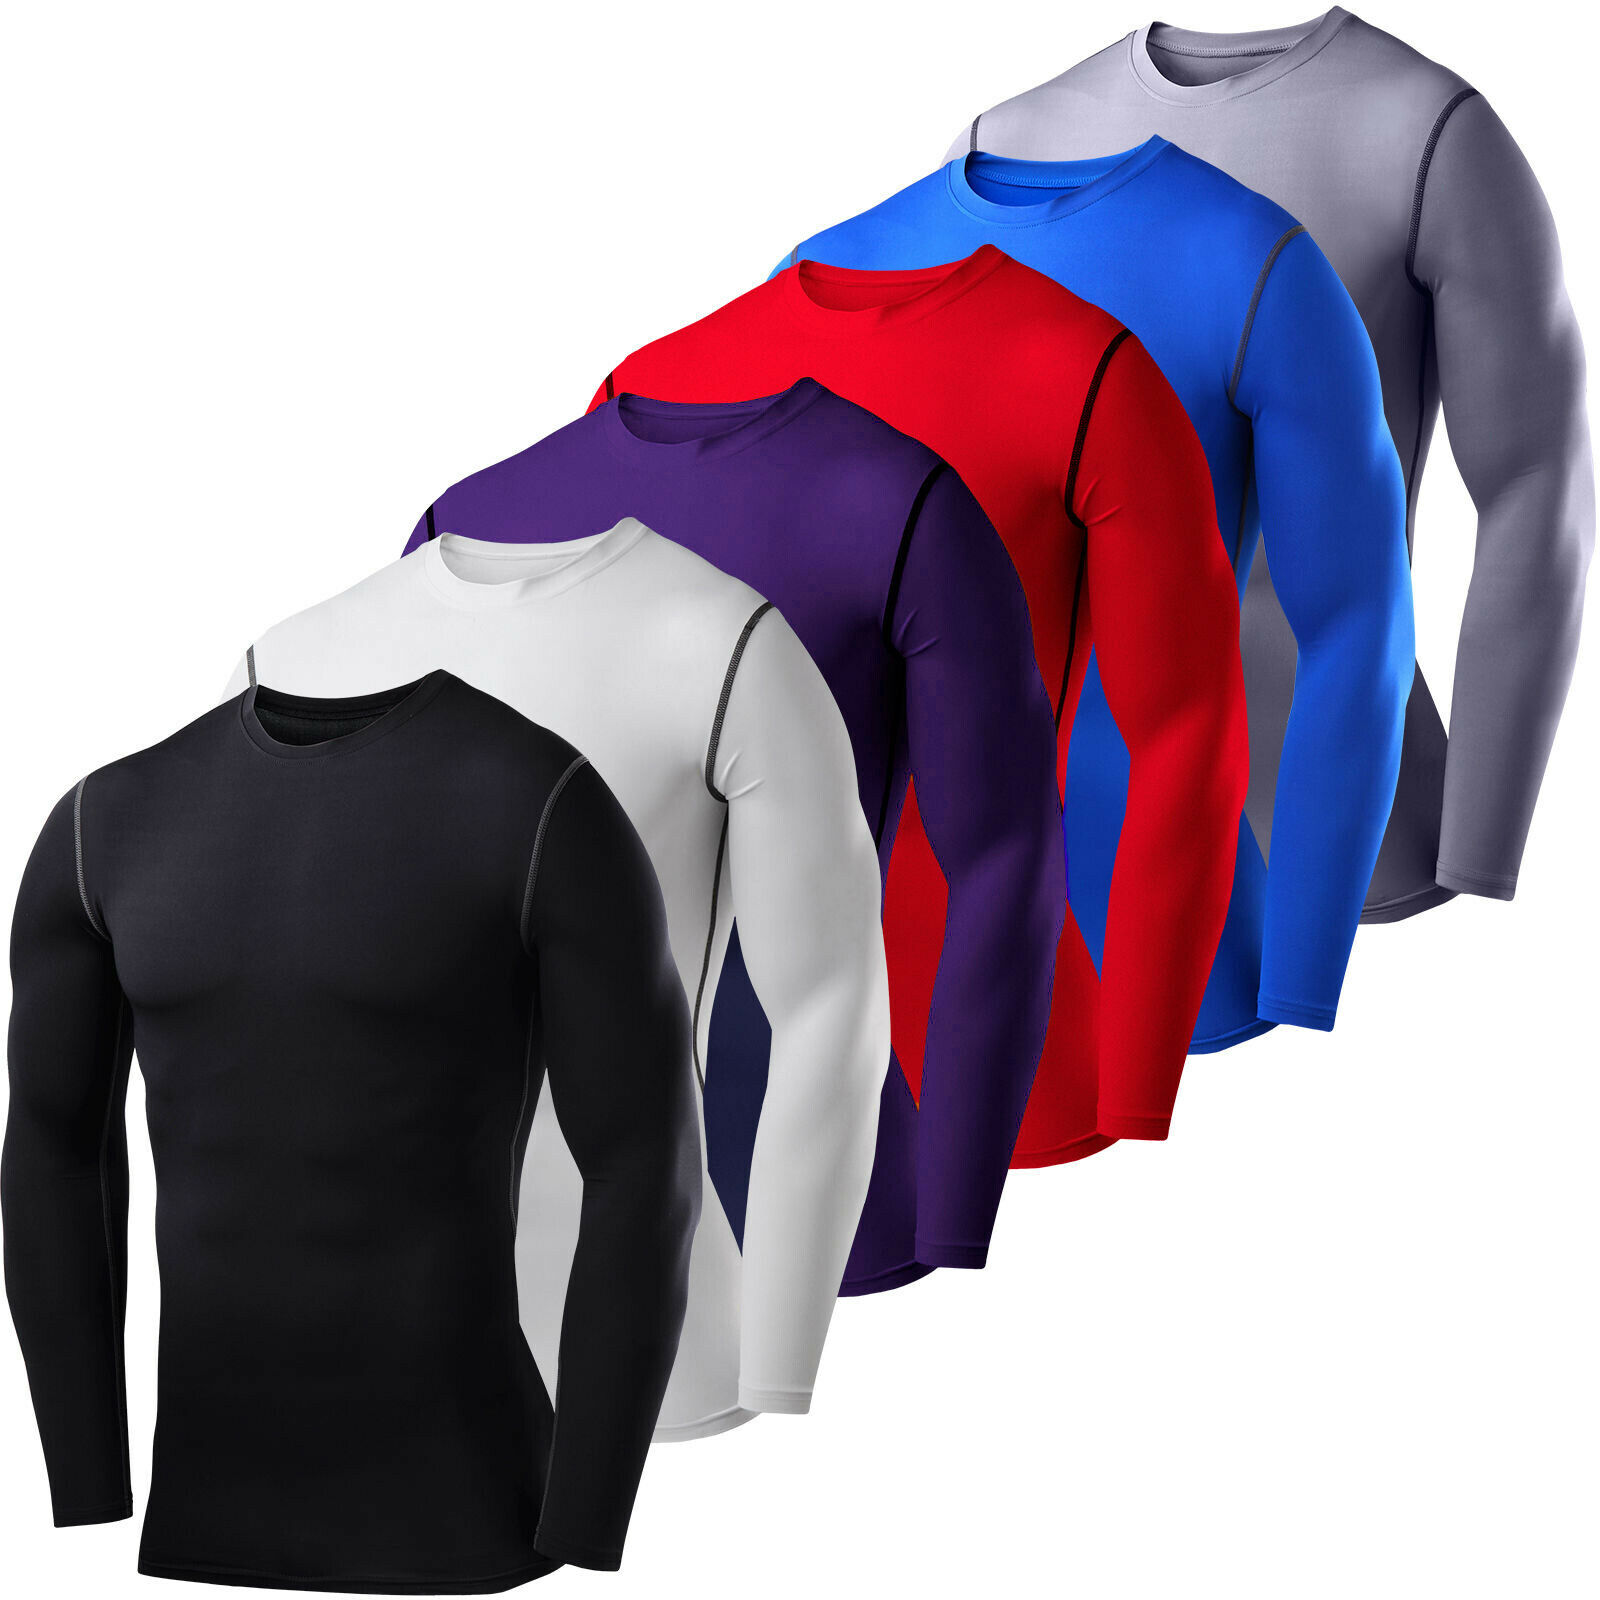 Mens Umbro High Neck Long Sleeve Baselayer Training Top Sizes from S to XXL